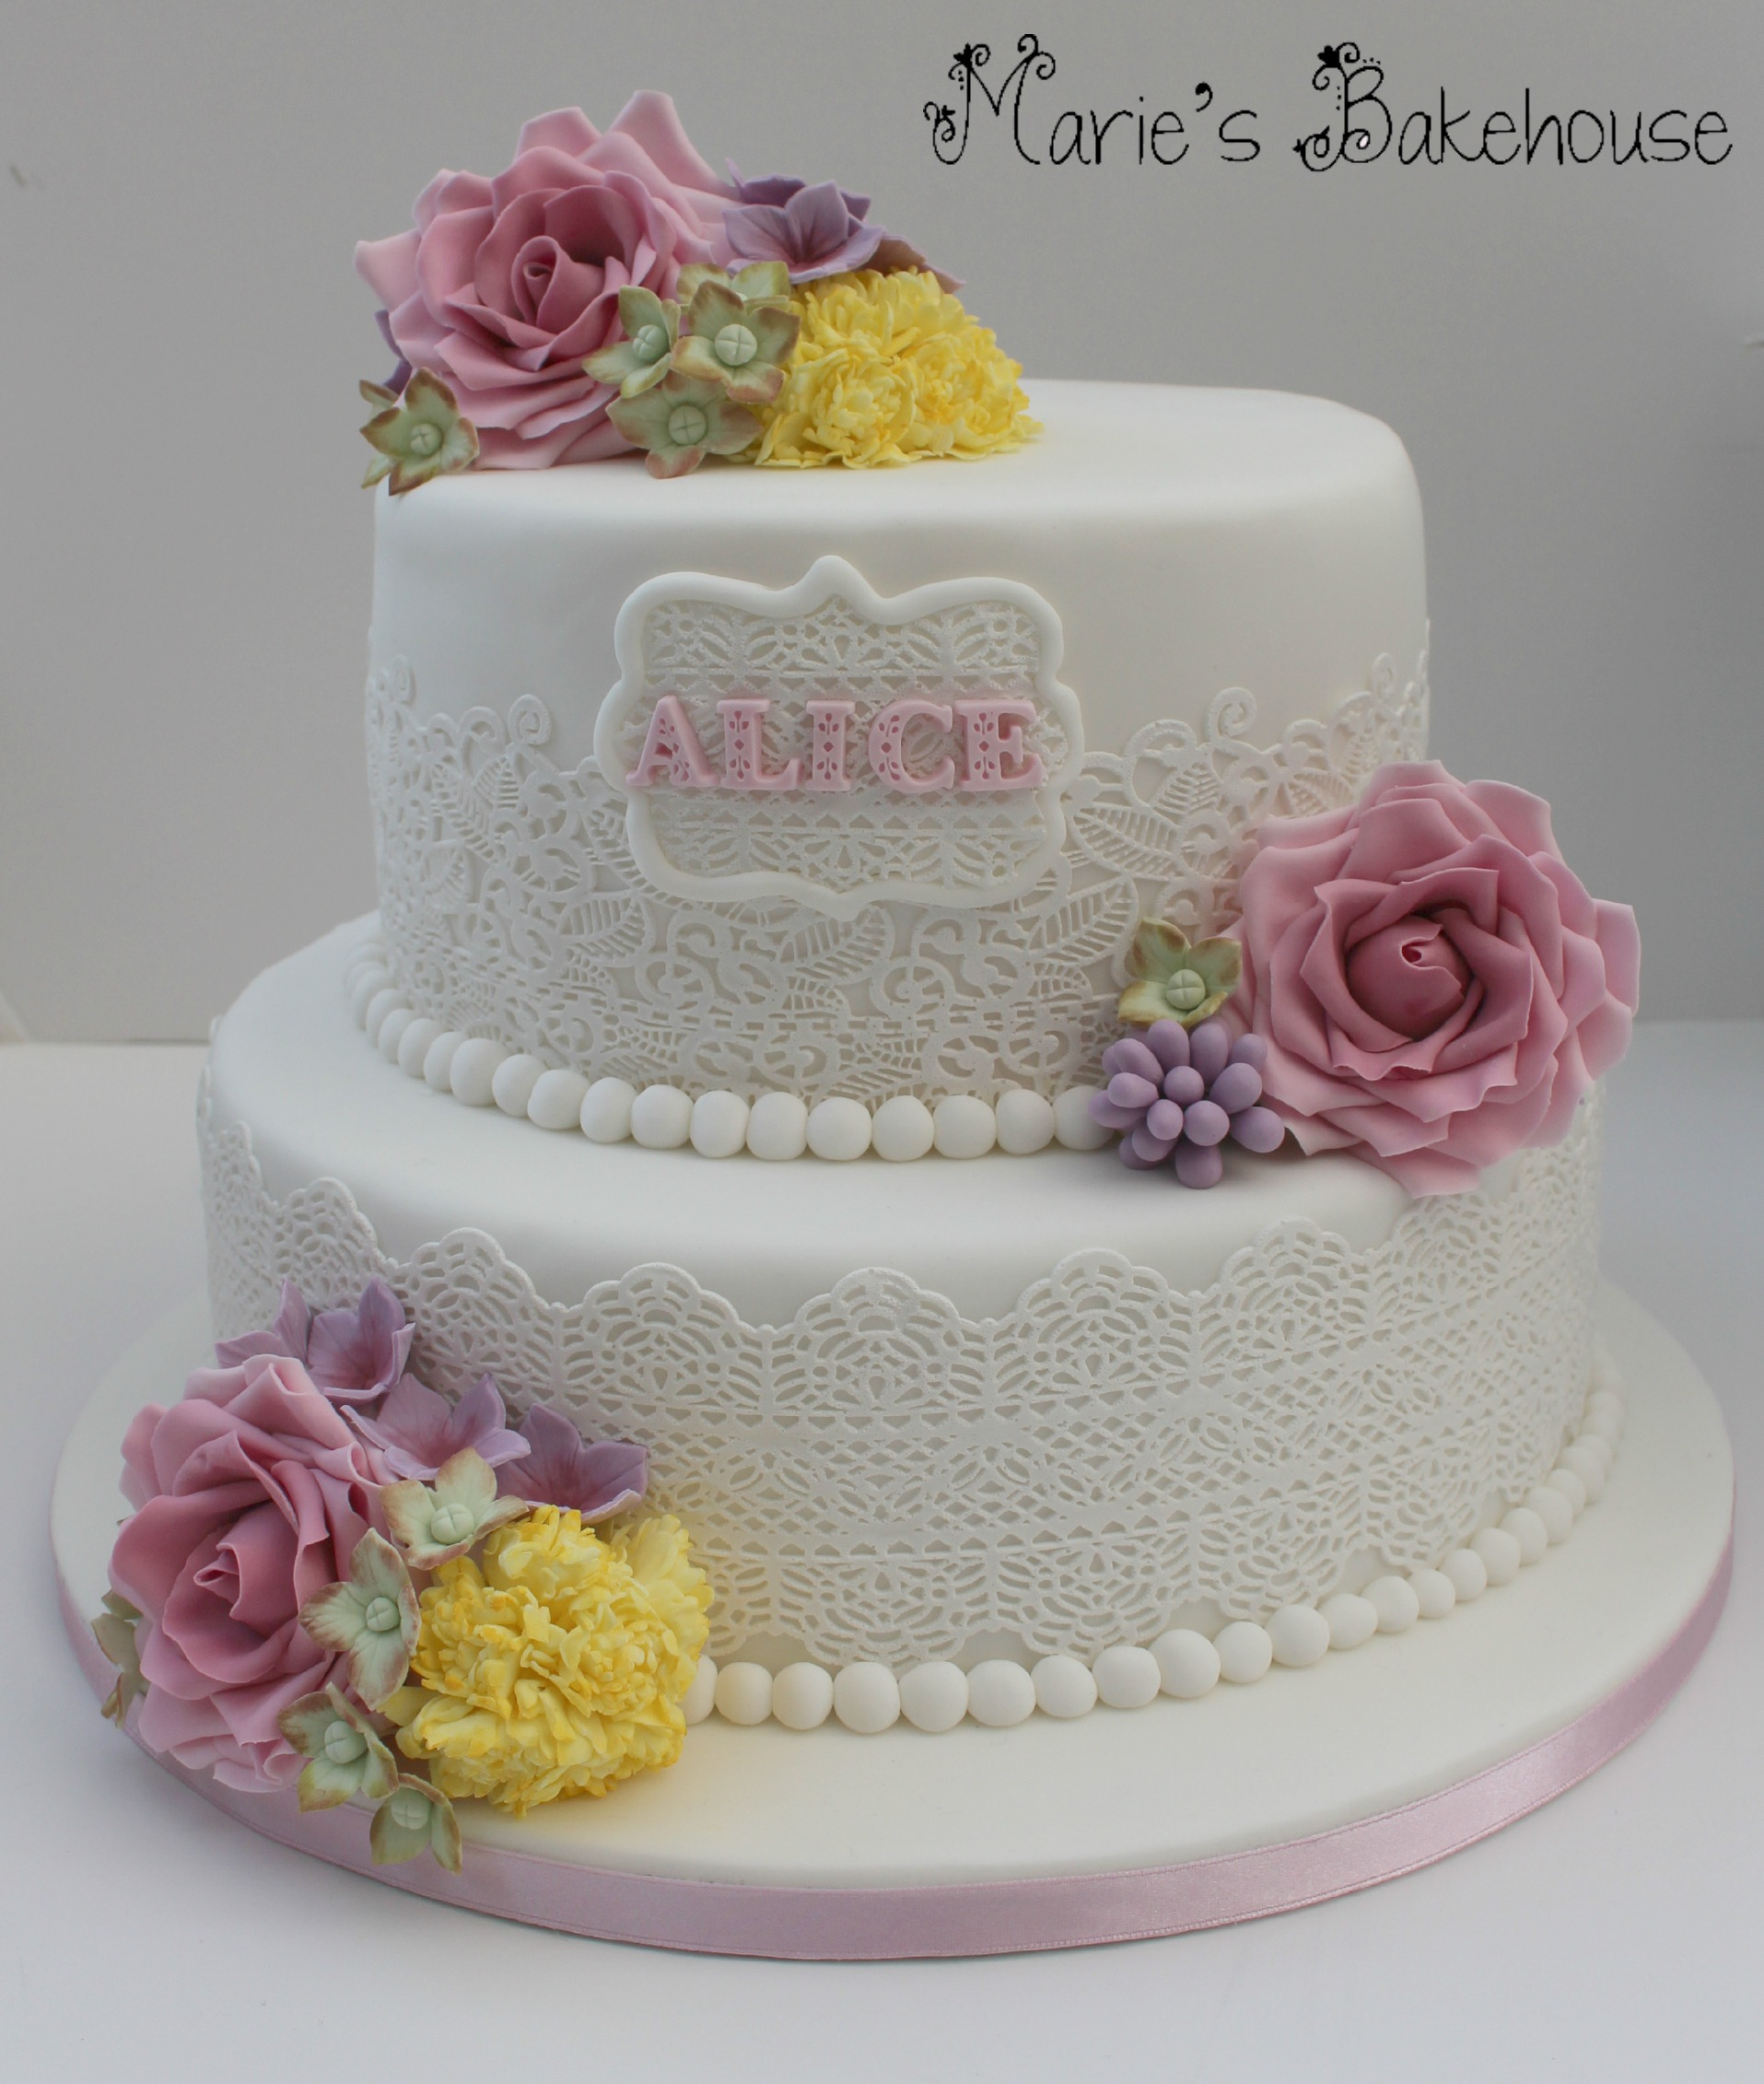 90th birthday cake with sugar flowers and edible lace